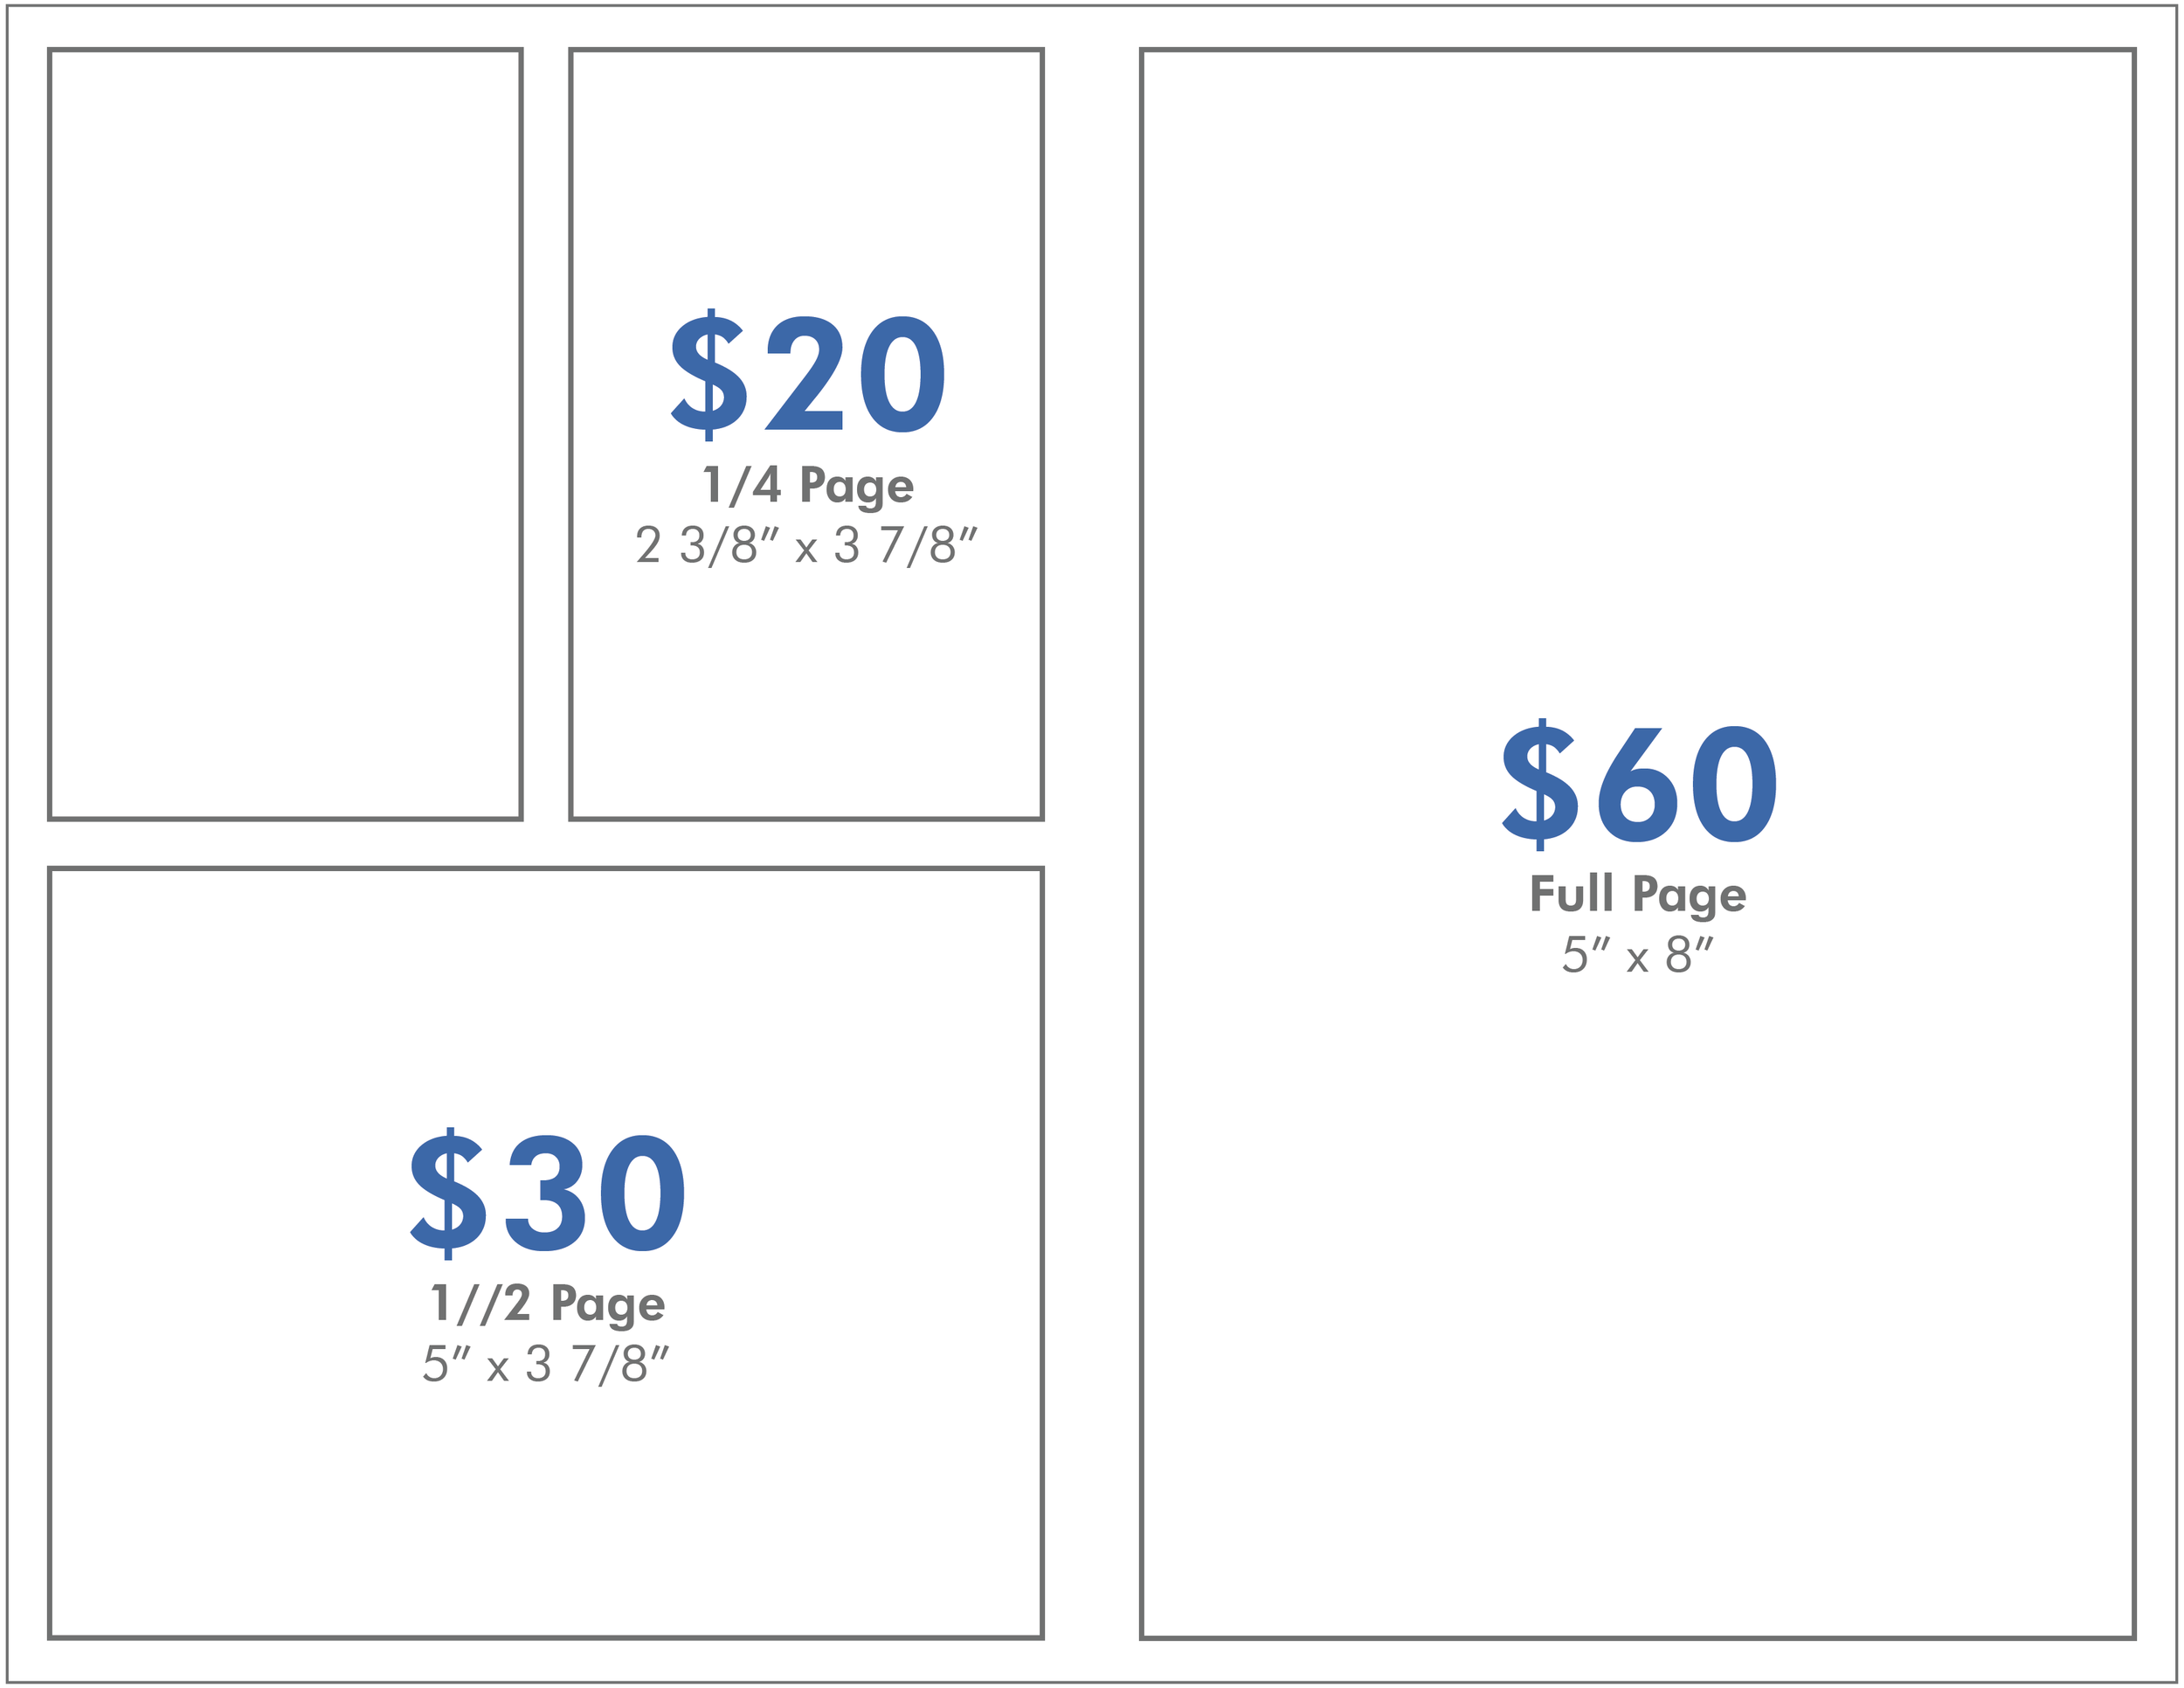 Ad Pricing-01-01-01-01.png